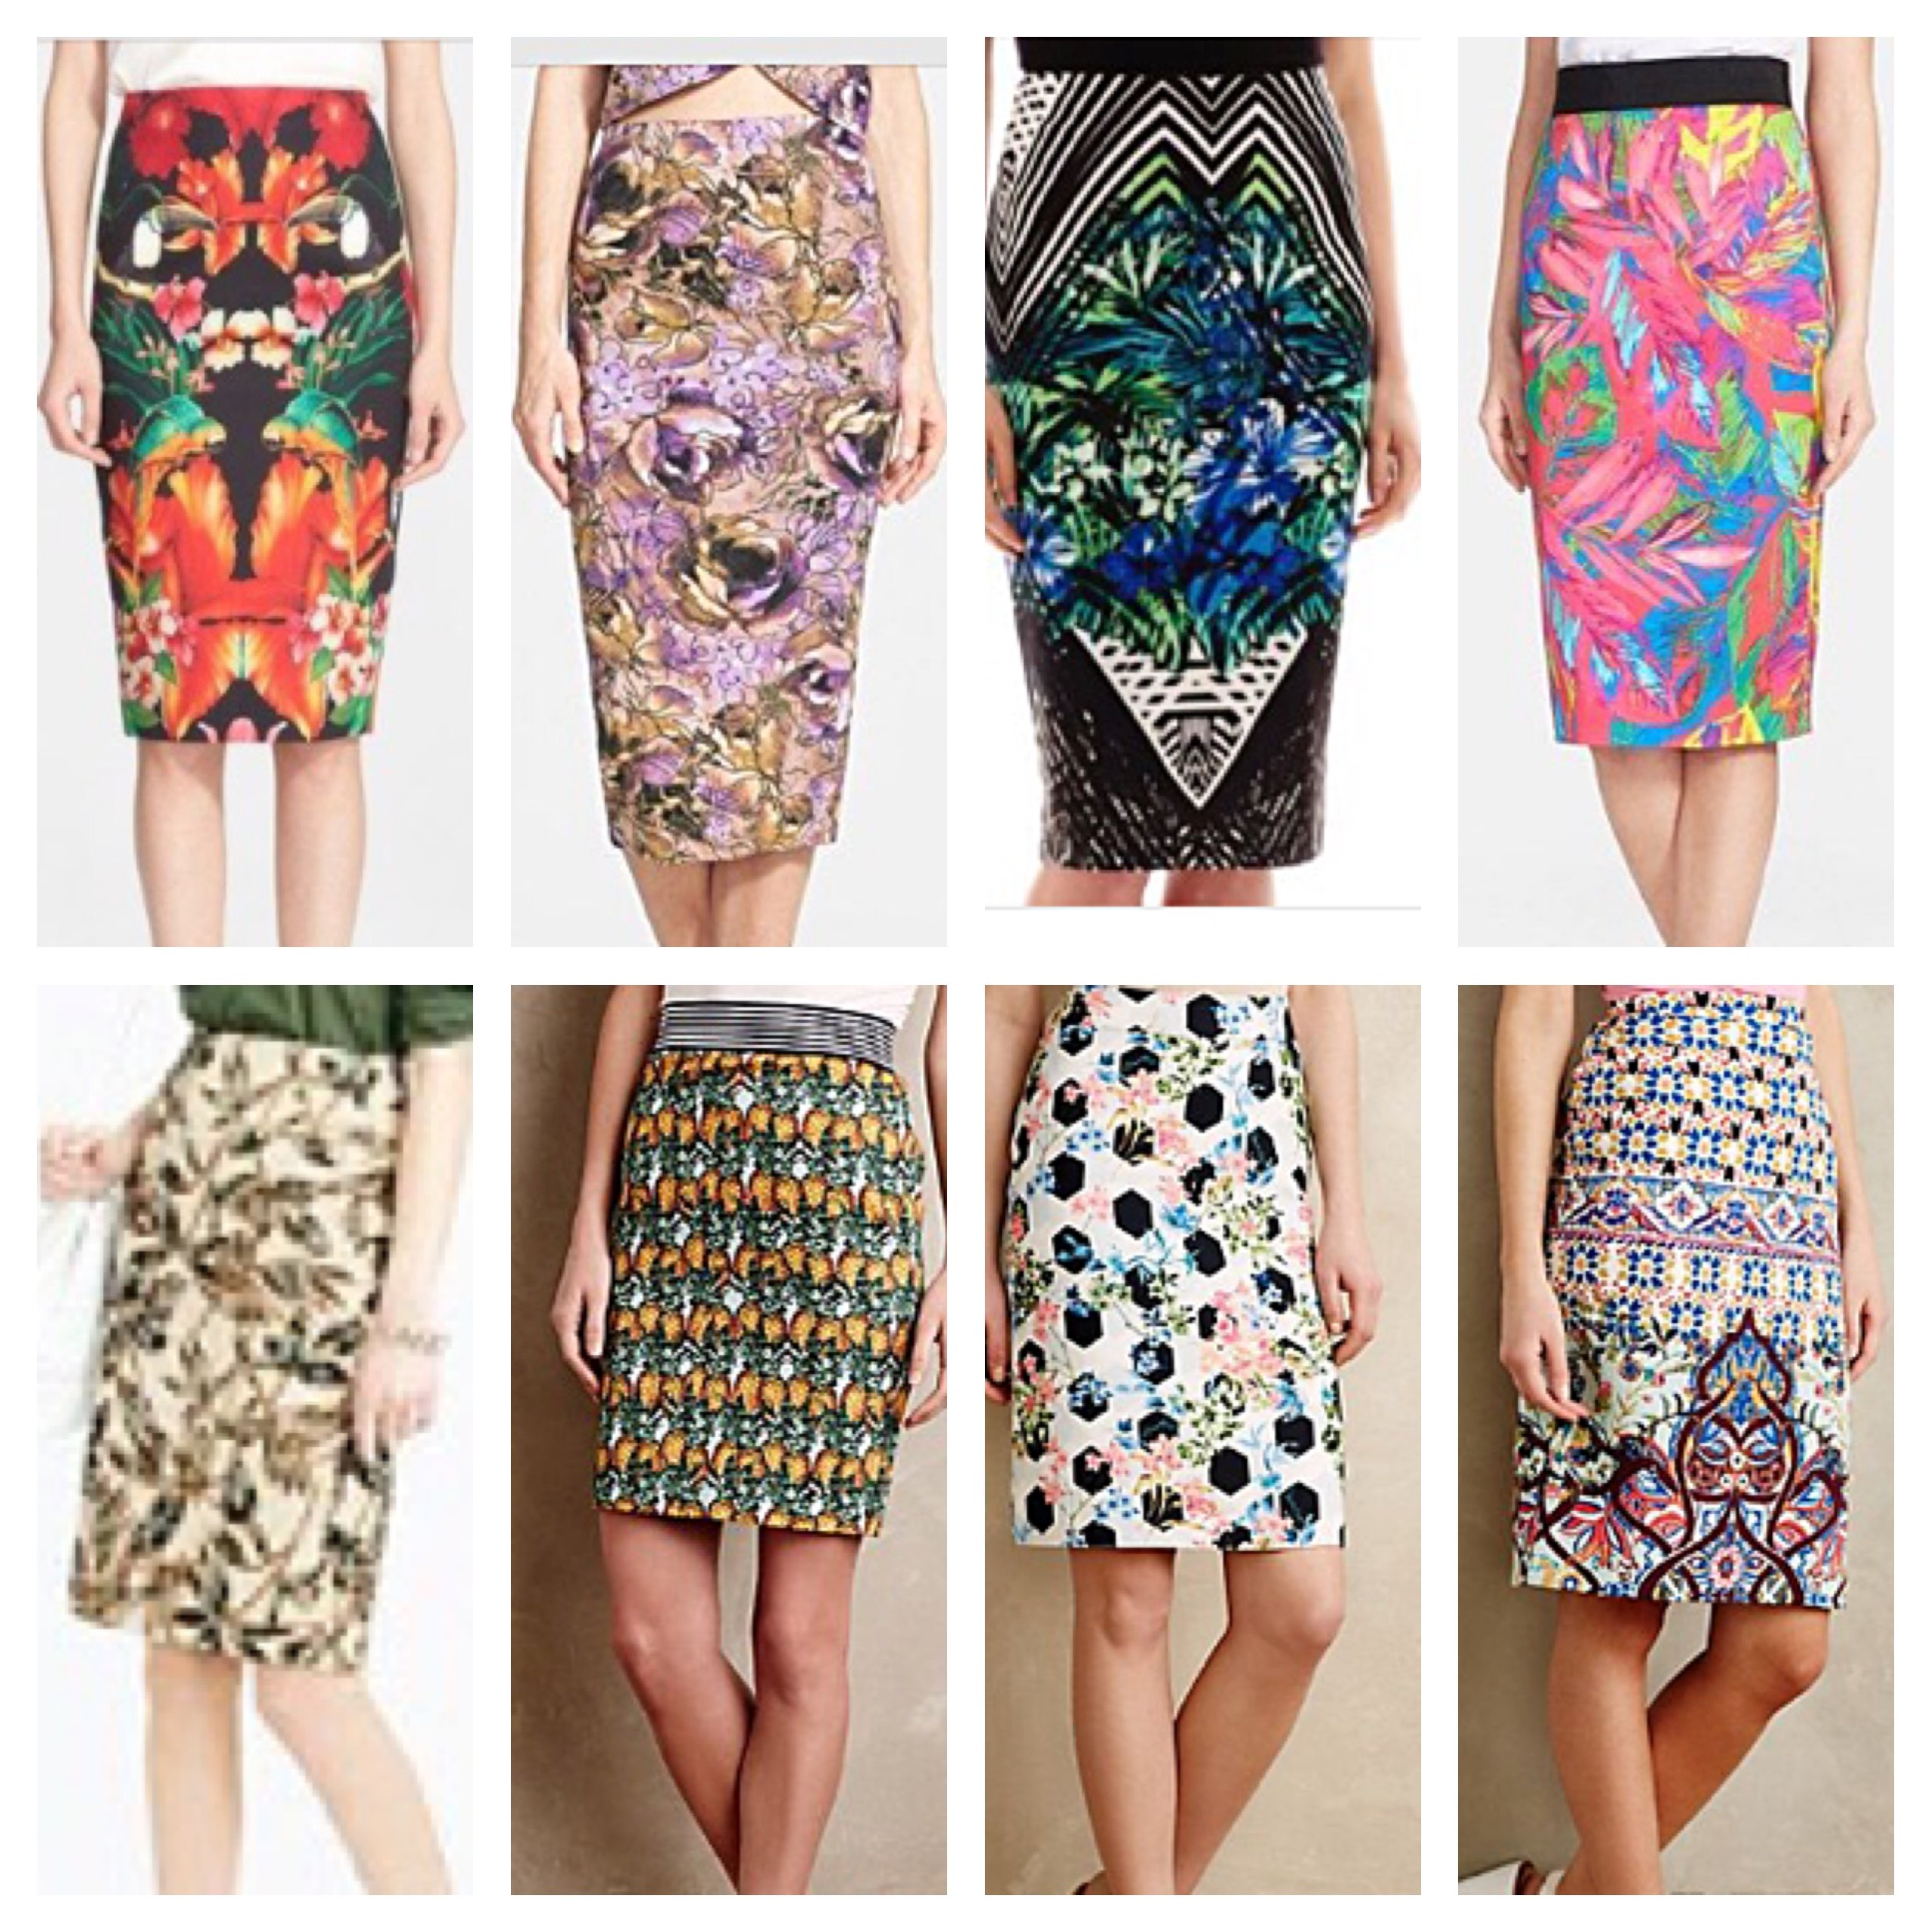 Pattern Play: How to Wear and Style Patterned Pencil Skirts